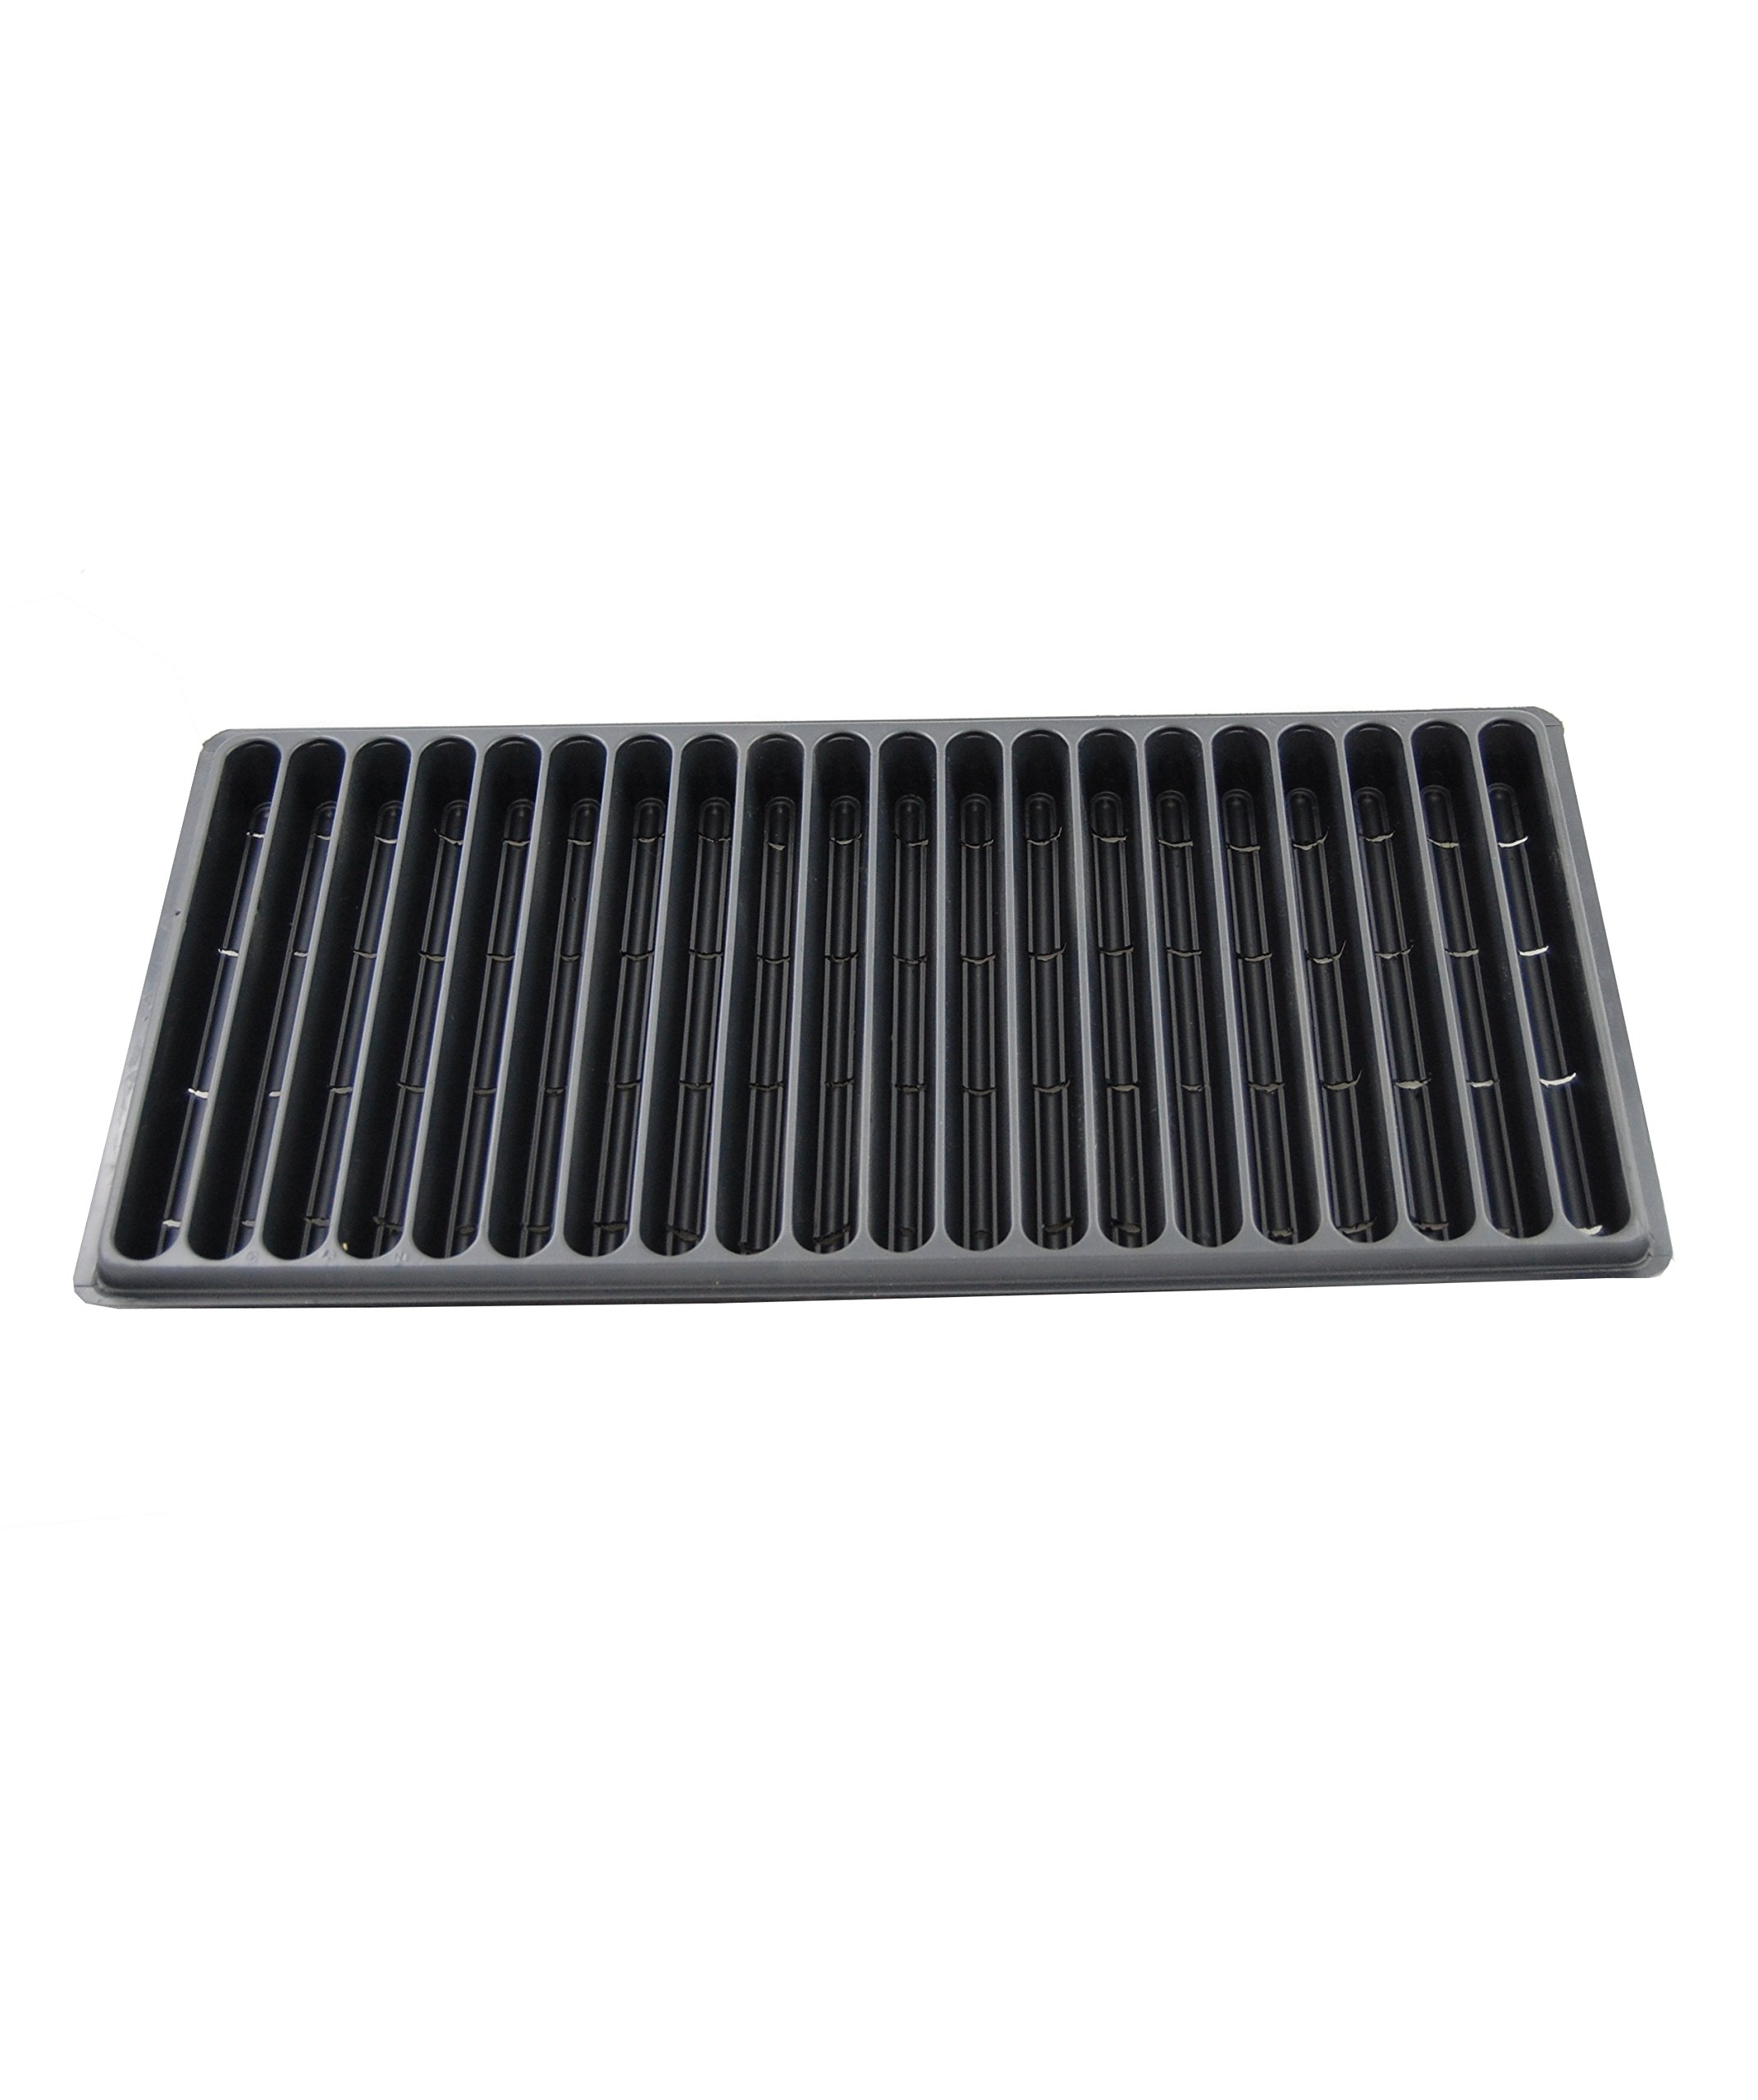 20 Row Seedling Flat – Seed Tray - Growing - Seed Starting - Case of 50 by Grower's Solution